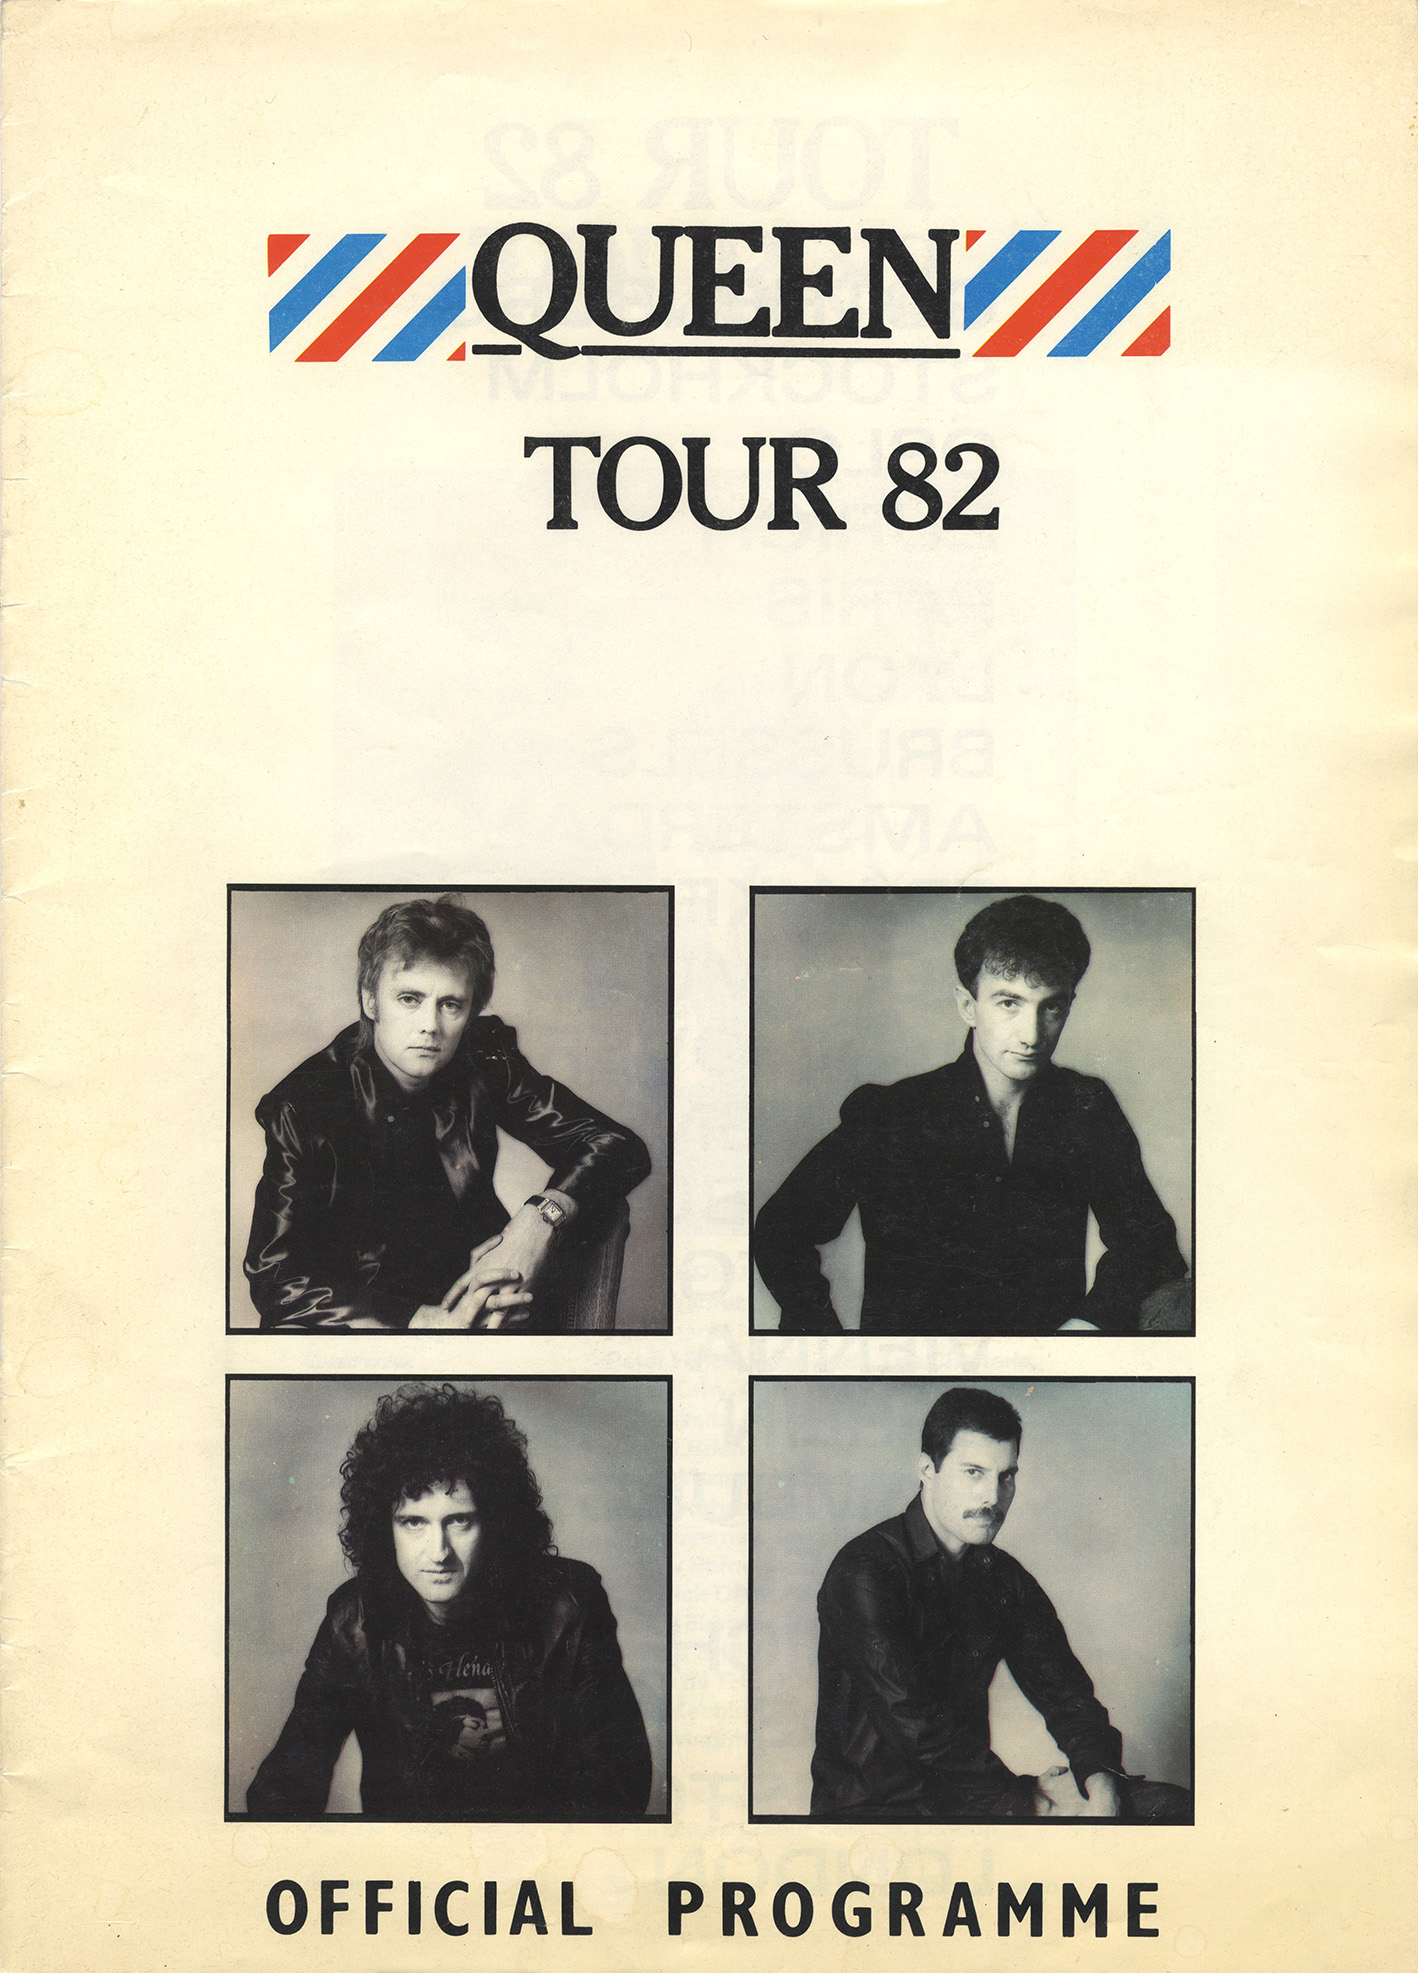 Hot Space tour program (Europe) - with cities listed on page 2 and band photo on page 3